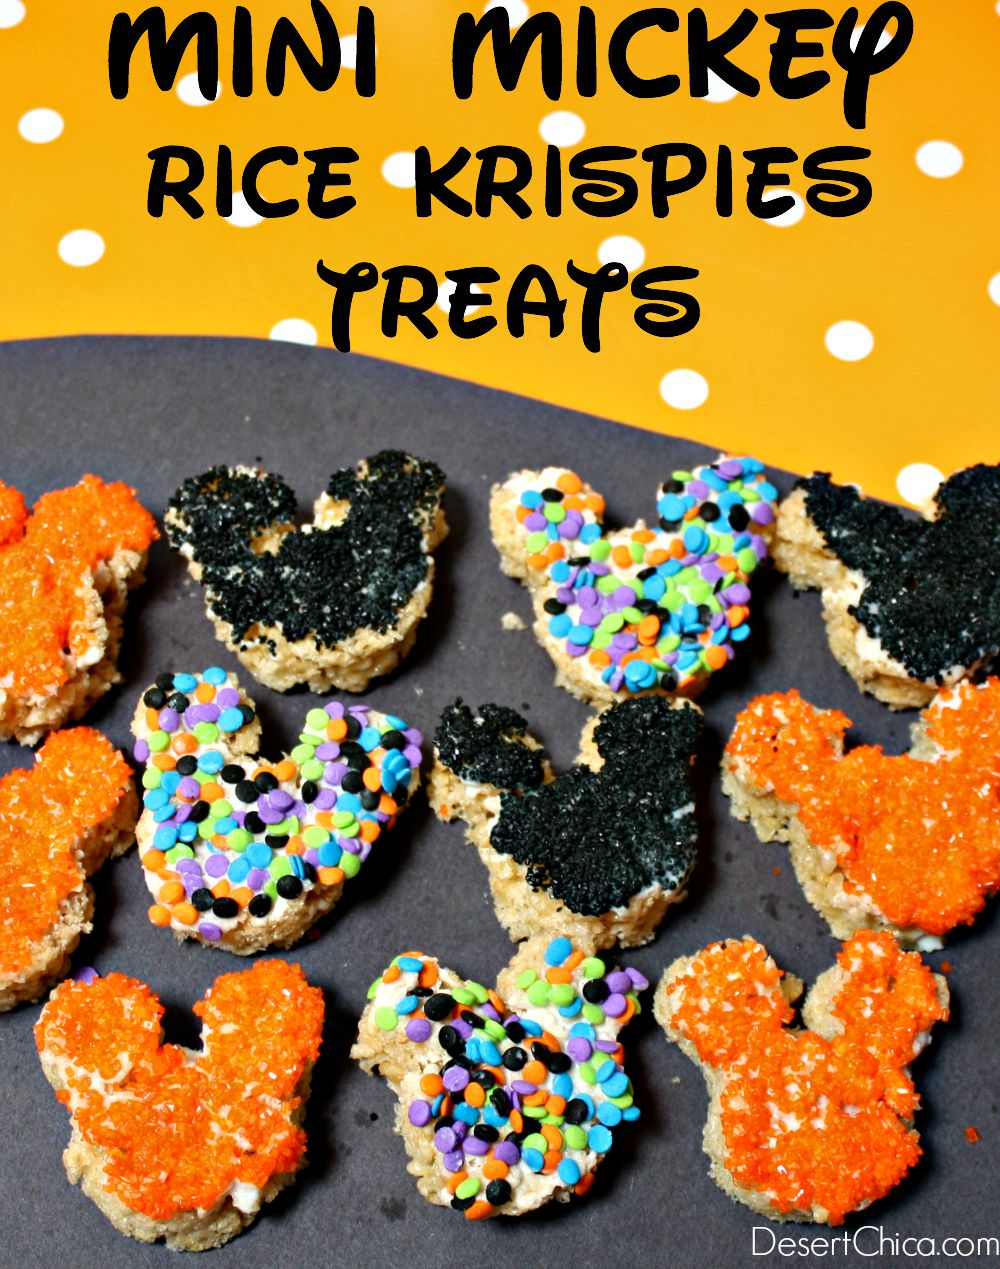 Mini Mickey Rice Krispies Treats